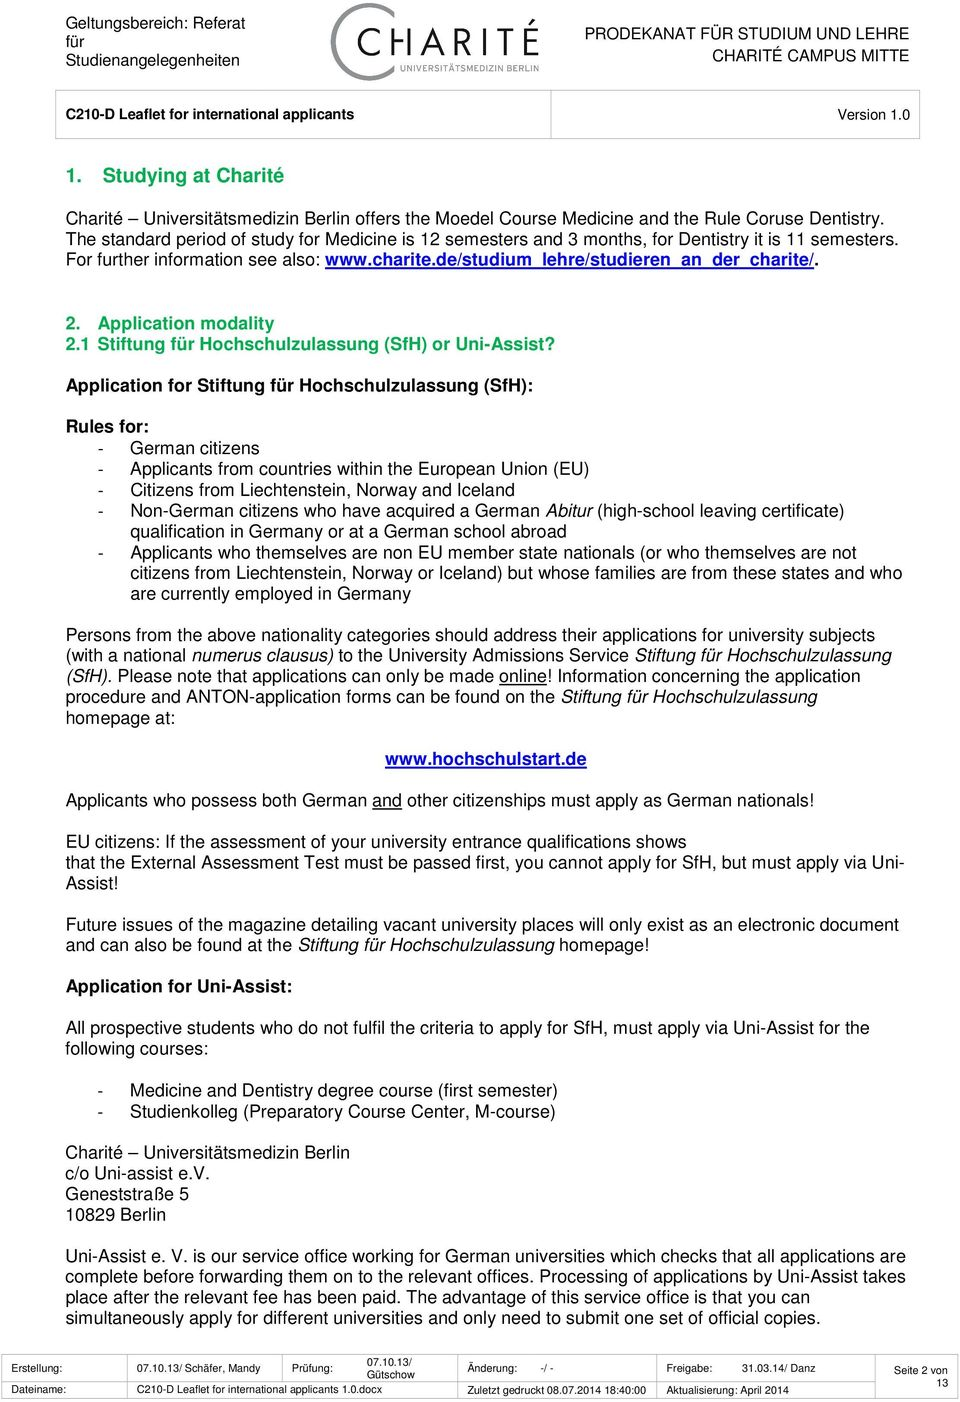 Application modality 2.1 Stiftung Hochschulzulassung (SfH) or Uni-Assist?